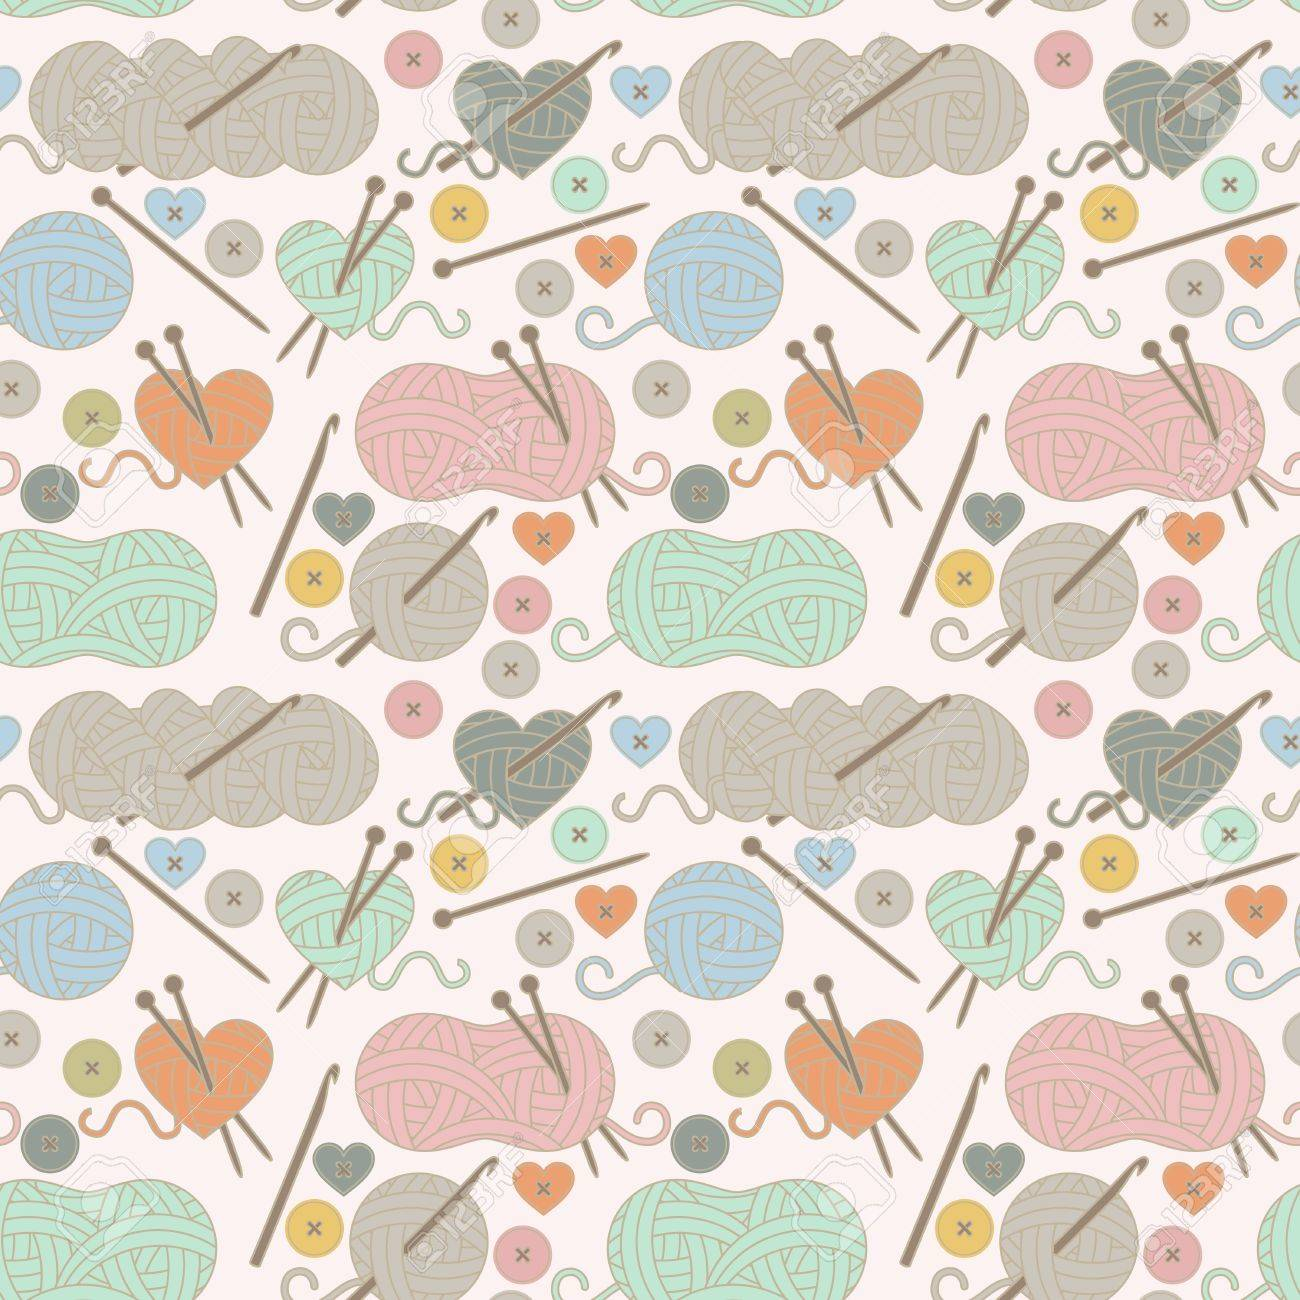 Seamless Tileable Background With Yarn Knitting Needles And Royalty Free Cliparts Vectors And Stock Illustration Image 63106651